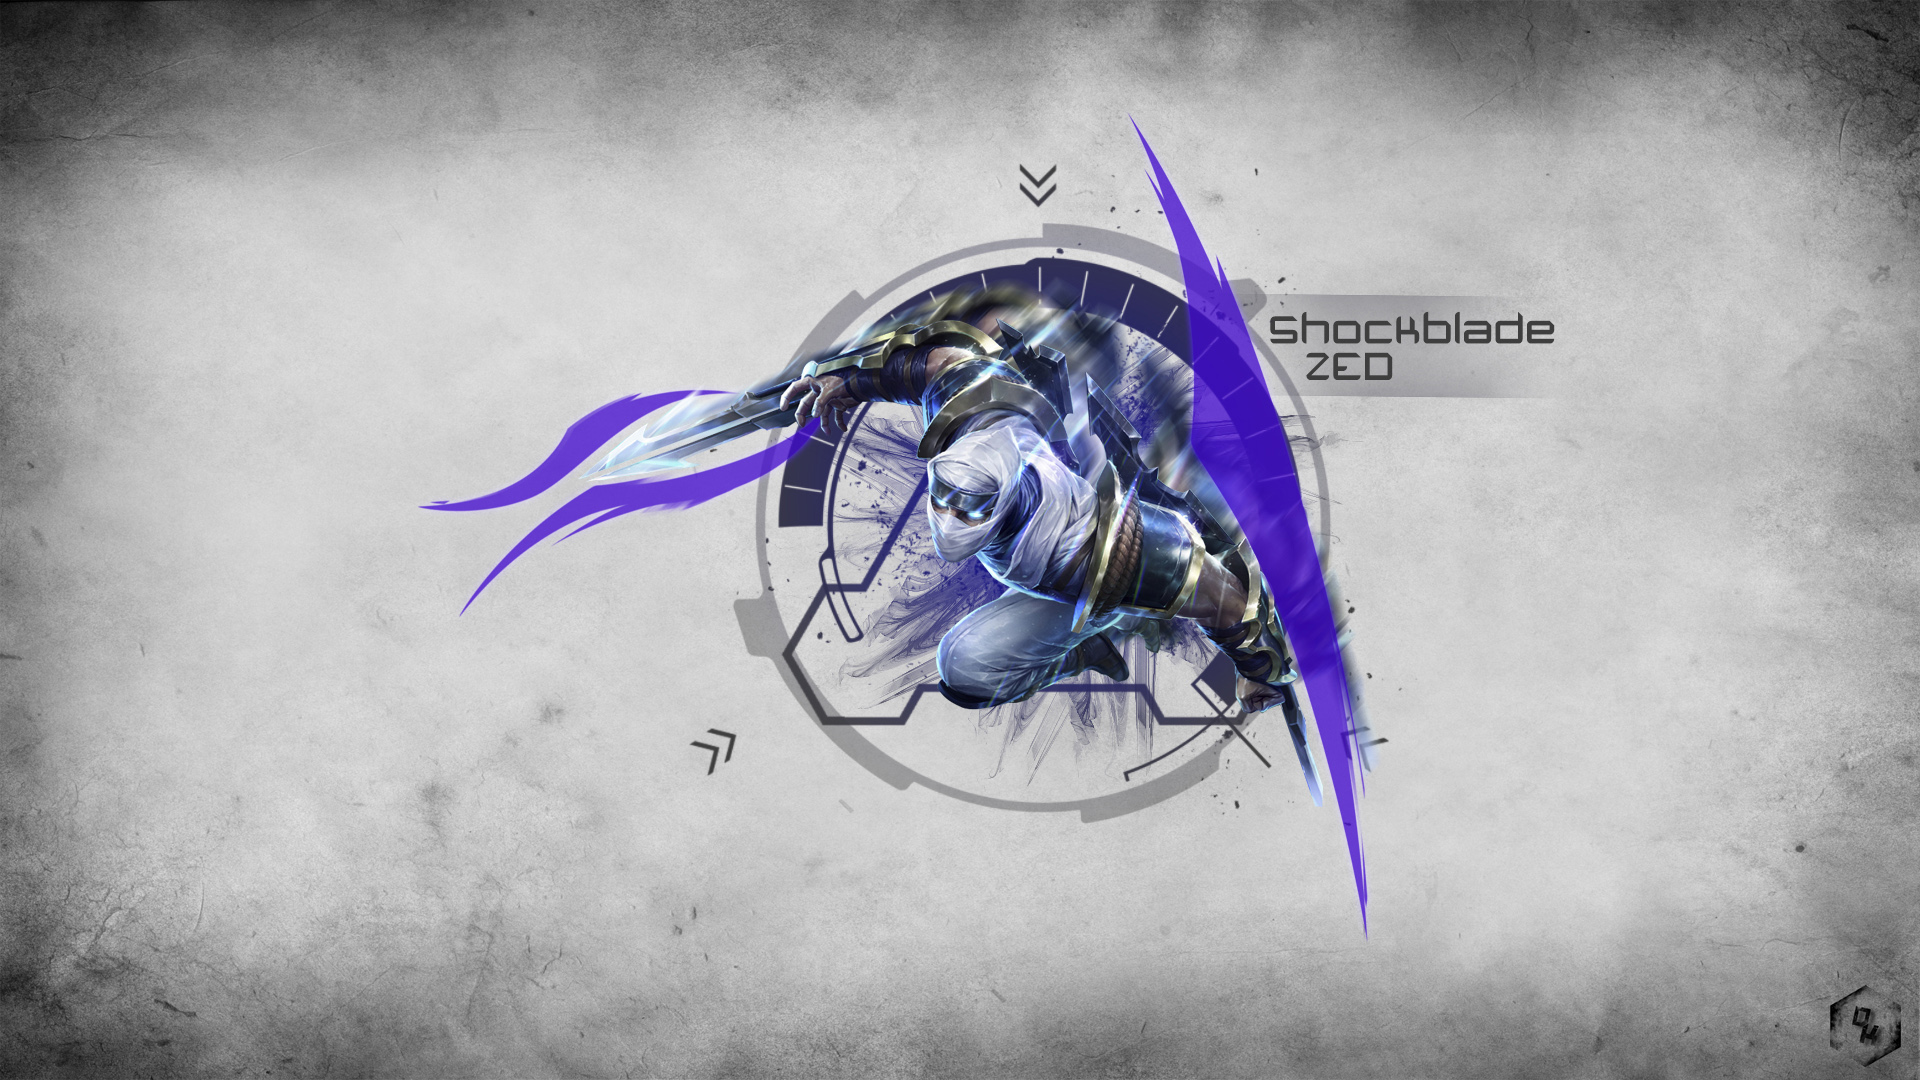 League Of Legends Shockblade Zed Wallpaper 1080p Is Cool Wallpapers